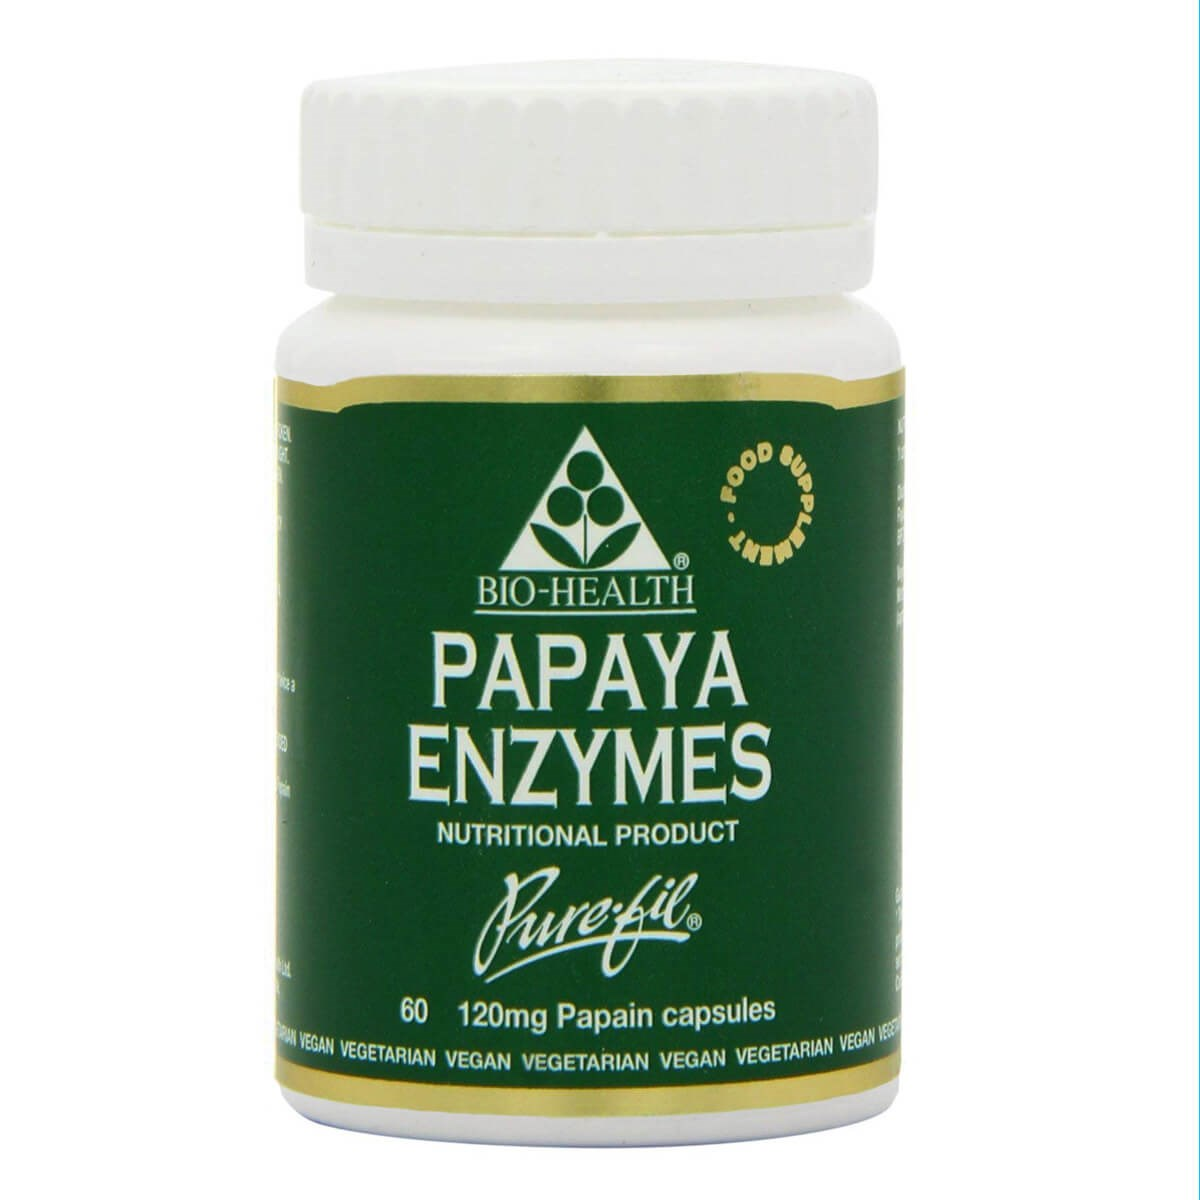 Bio-Health Papaya Enzymes Capsules